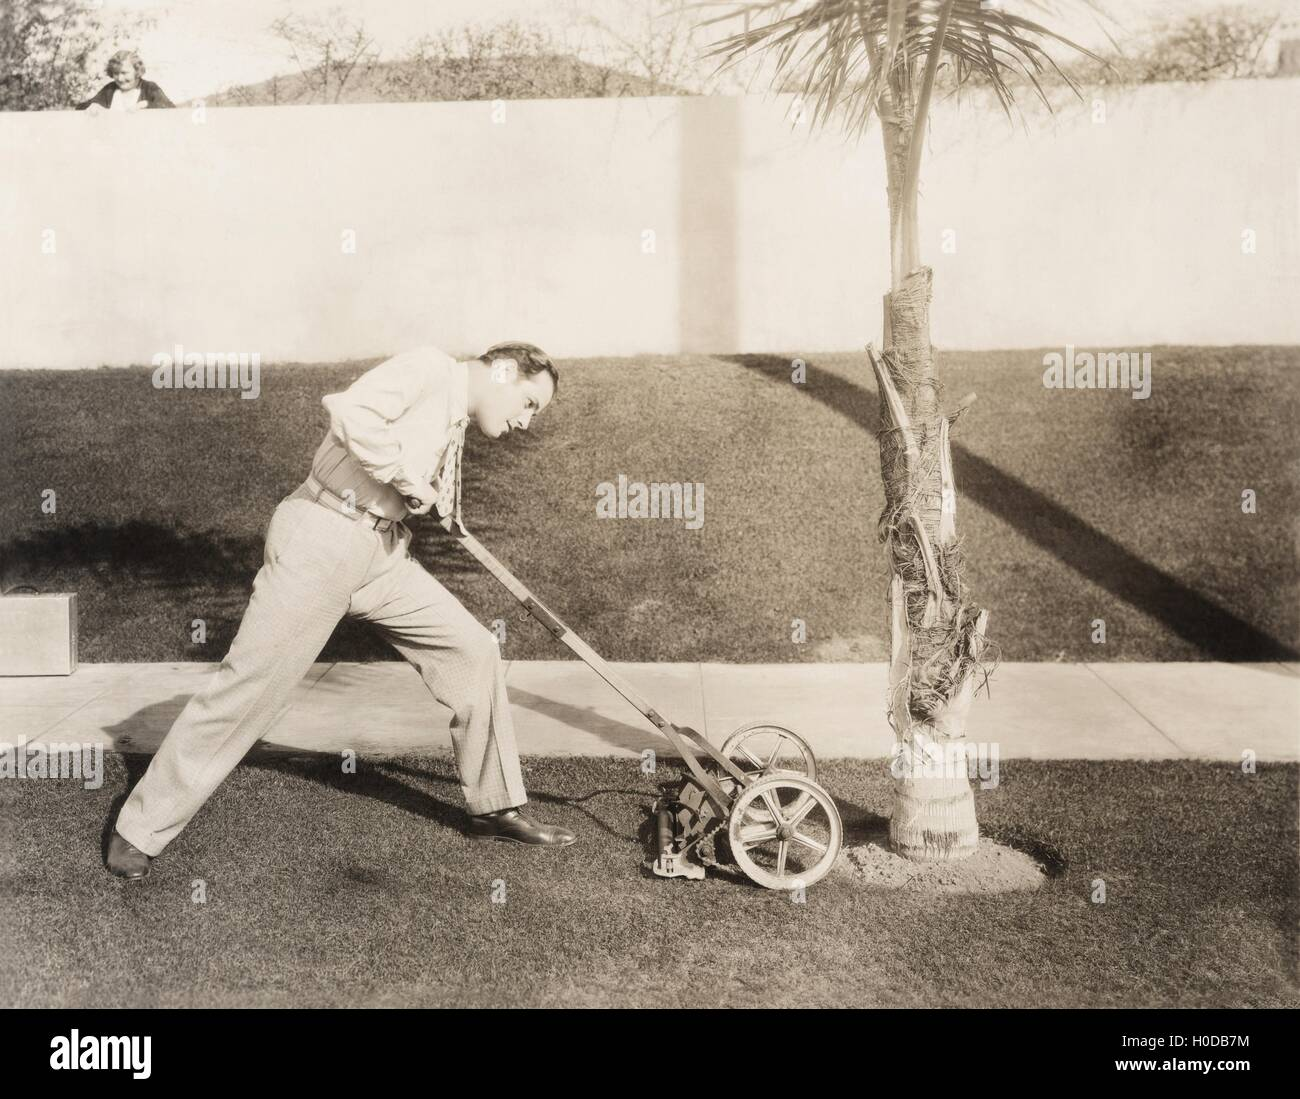 Man attacking palm tree with lawn mower - Stock Image